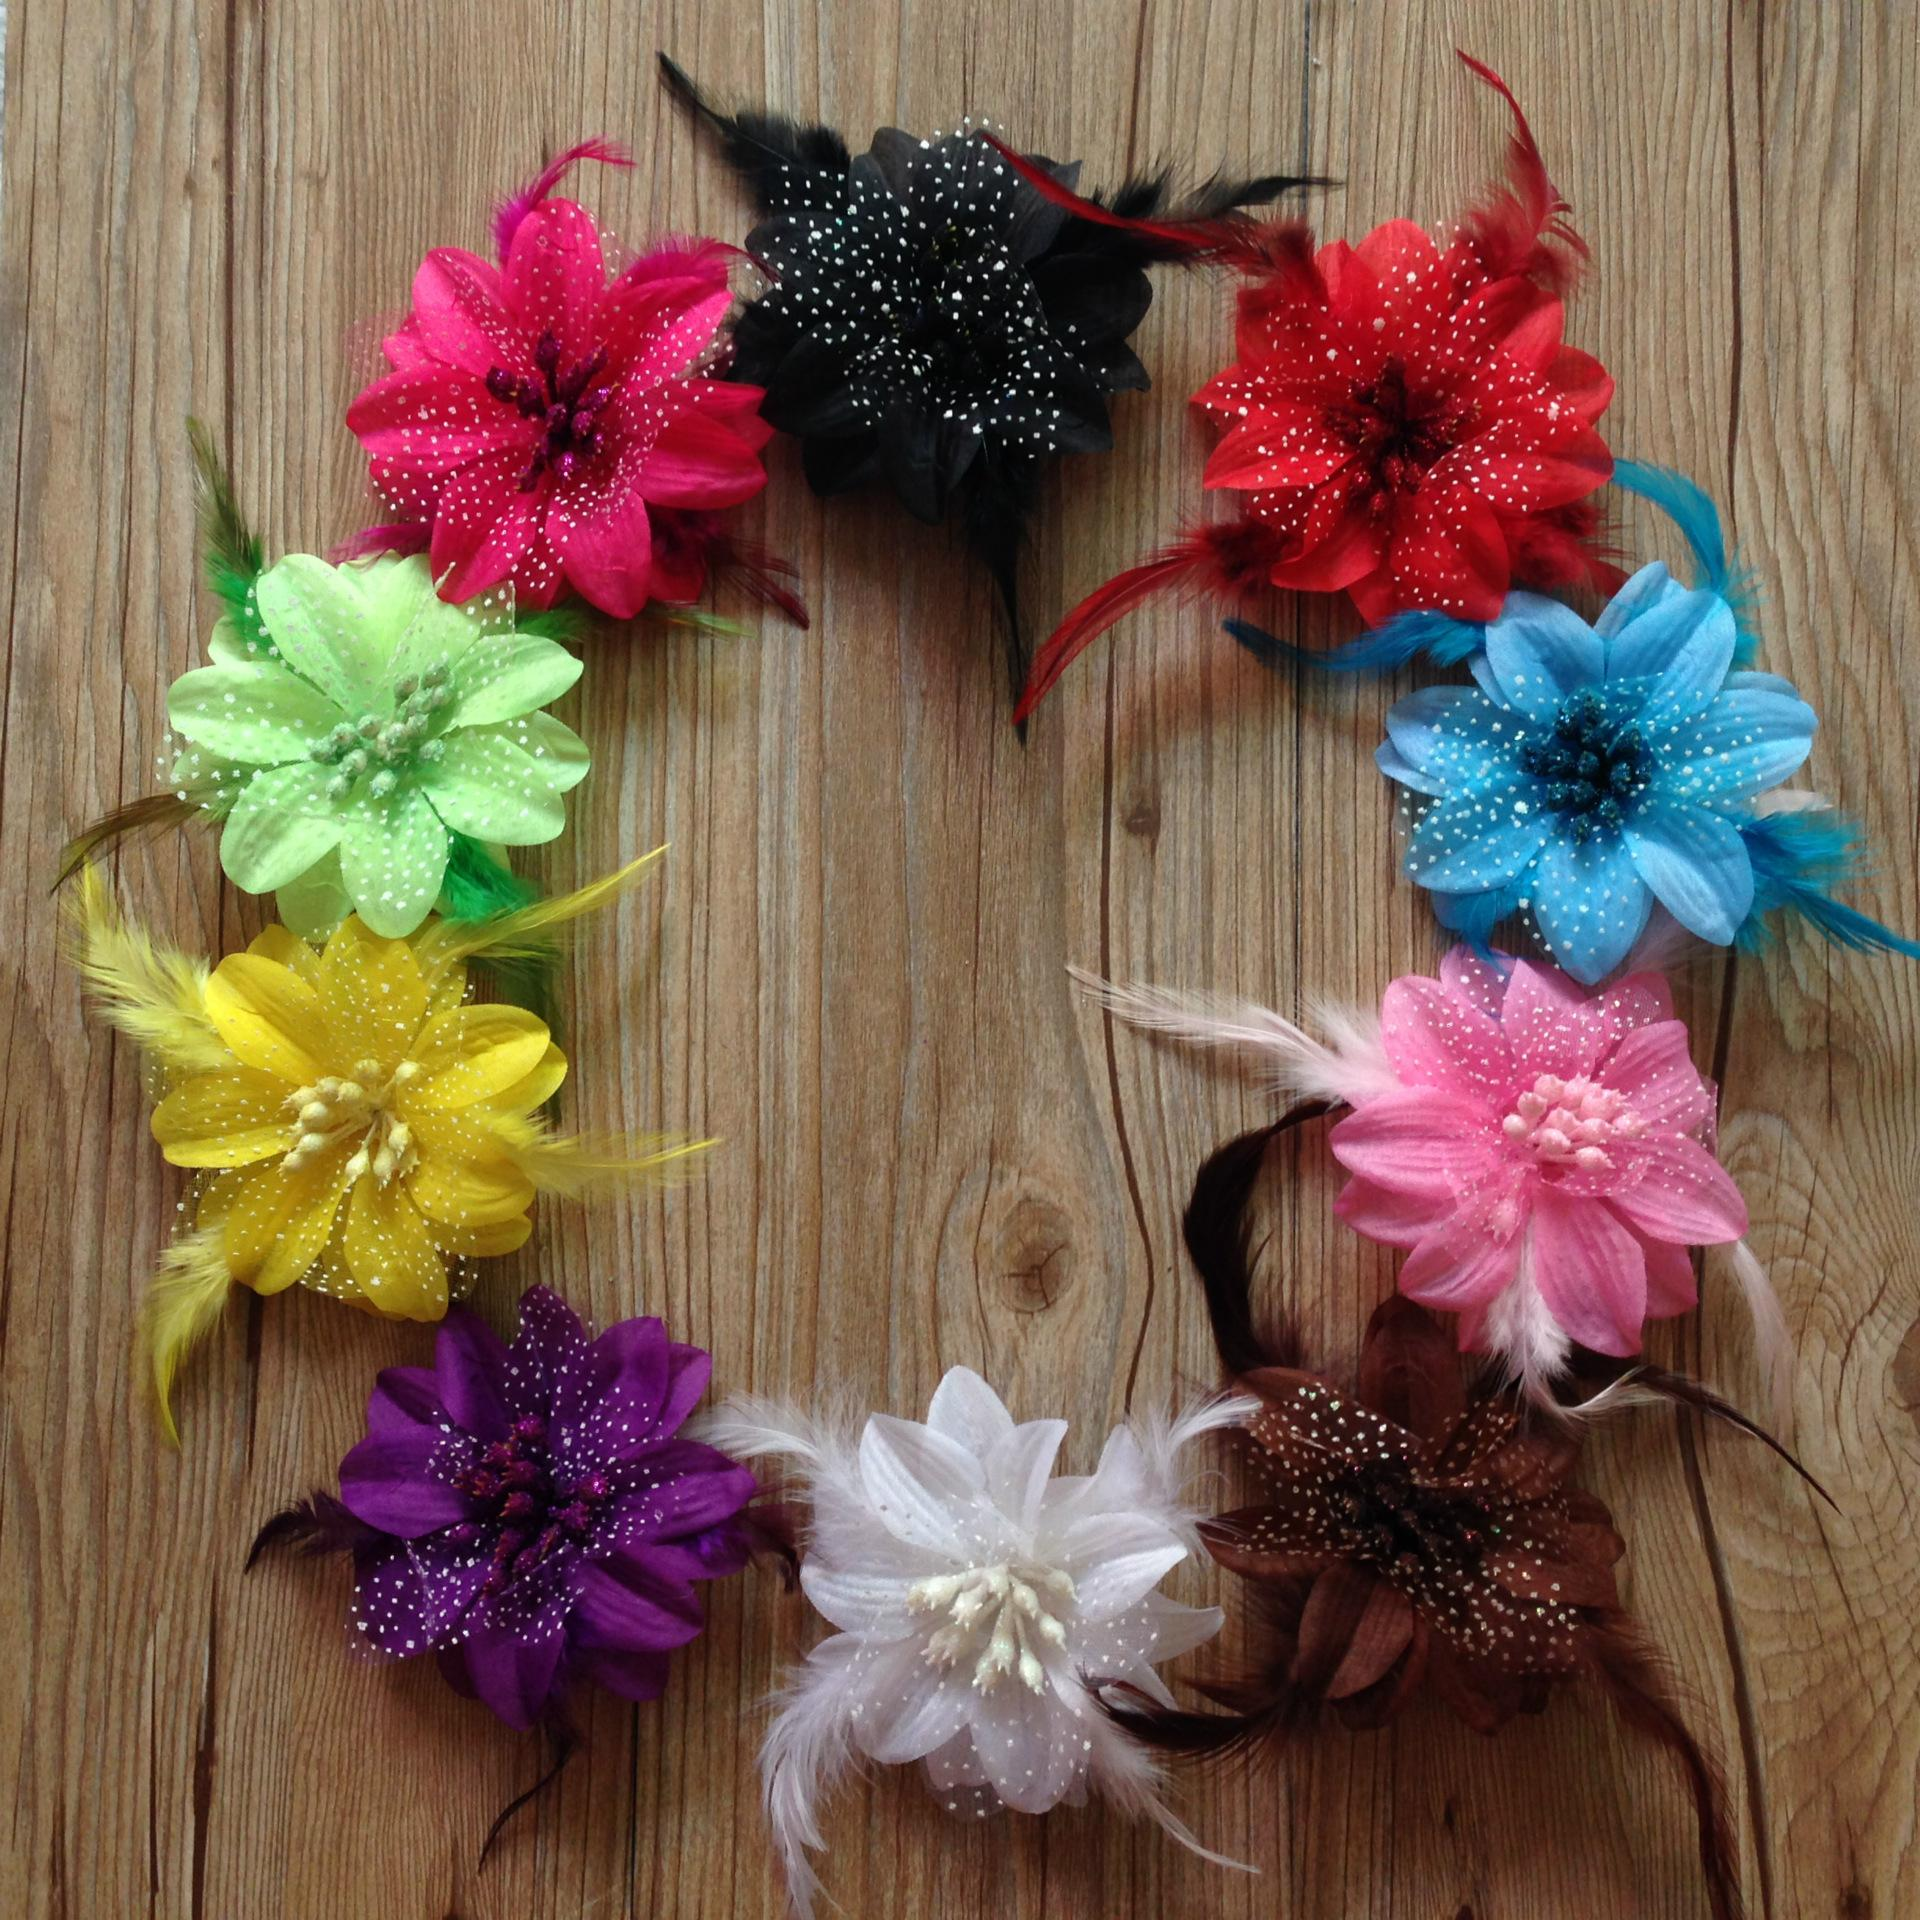 Diy hair accessories baby girls feather flower hair clips handmade diy hair accessories baby girls feather flower hair clips handmade fabric flowers for headband with clips childrens hair accessories bride hair accessories mightylinksfo